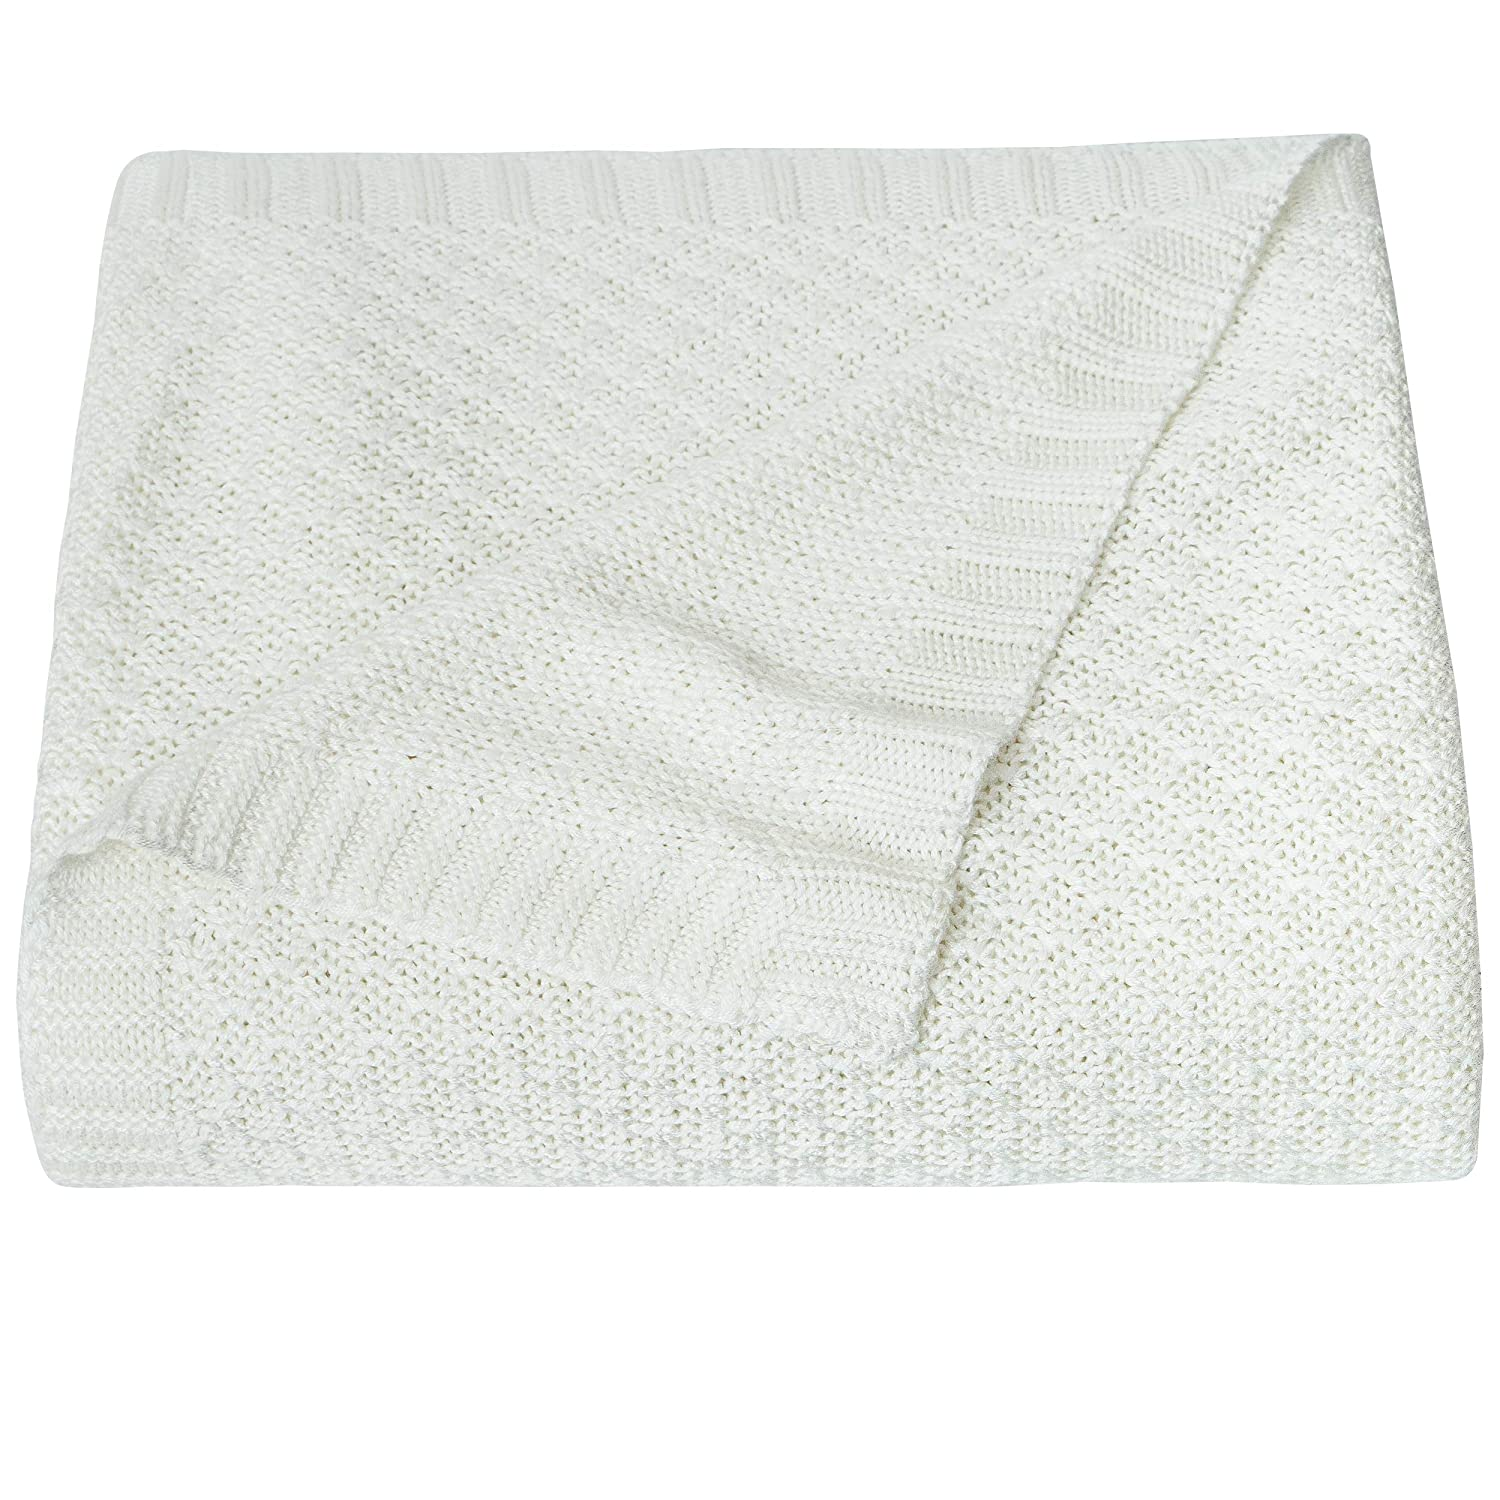 NTBAY Natural Bamboo Cable Knit Toddler Blanket, Soft and Cooling Touch Baby Blanket, 30 x 40 Inches, White